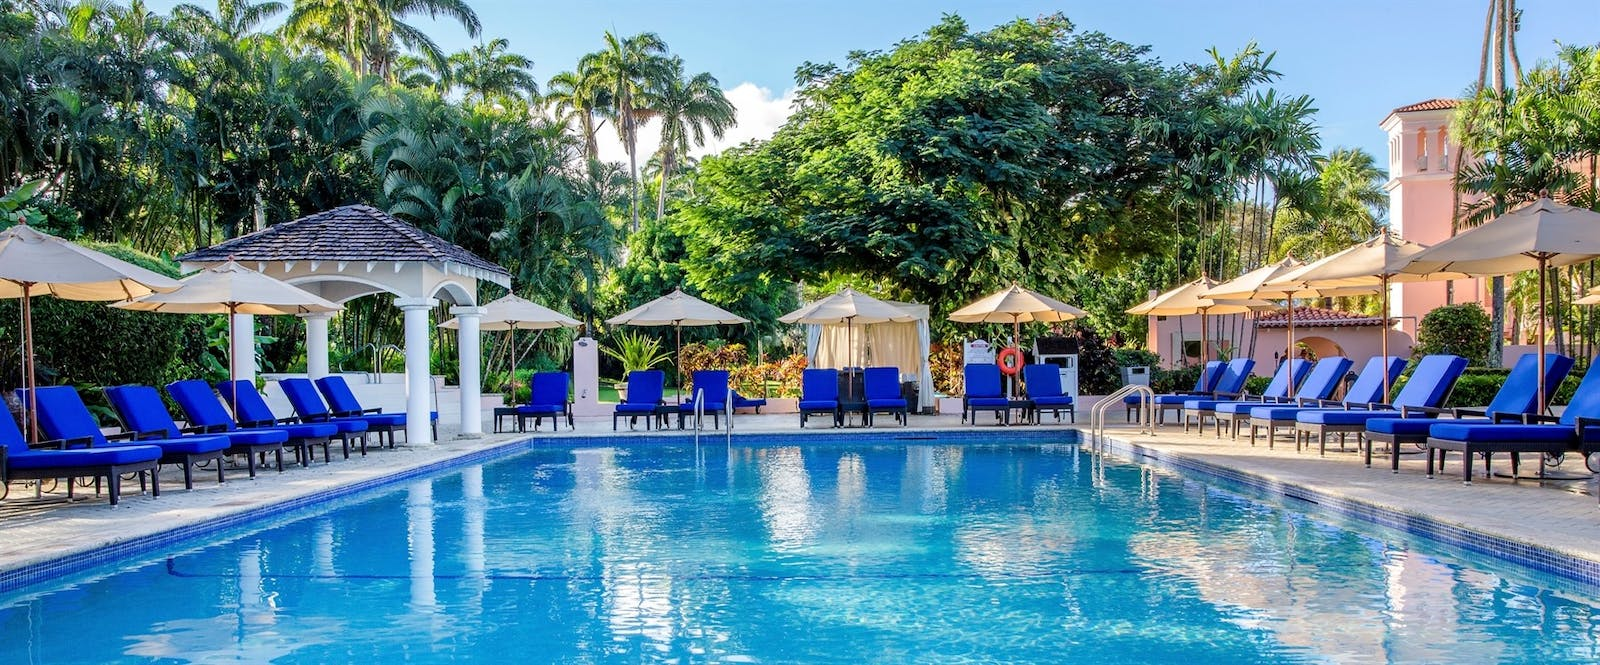 Swimming Pool at Fairmont Royal Pavilion, Barbados